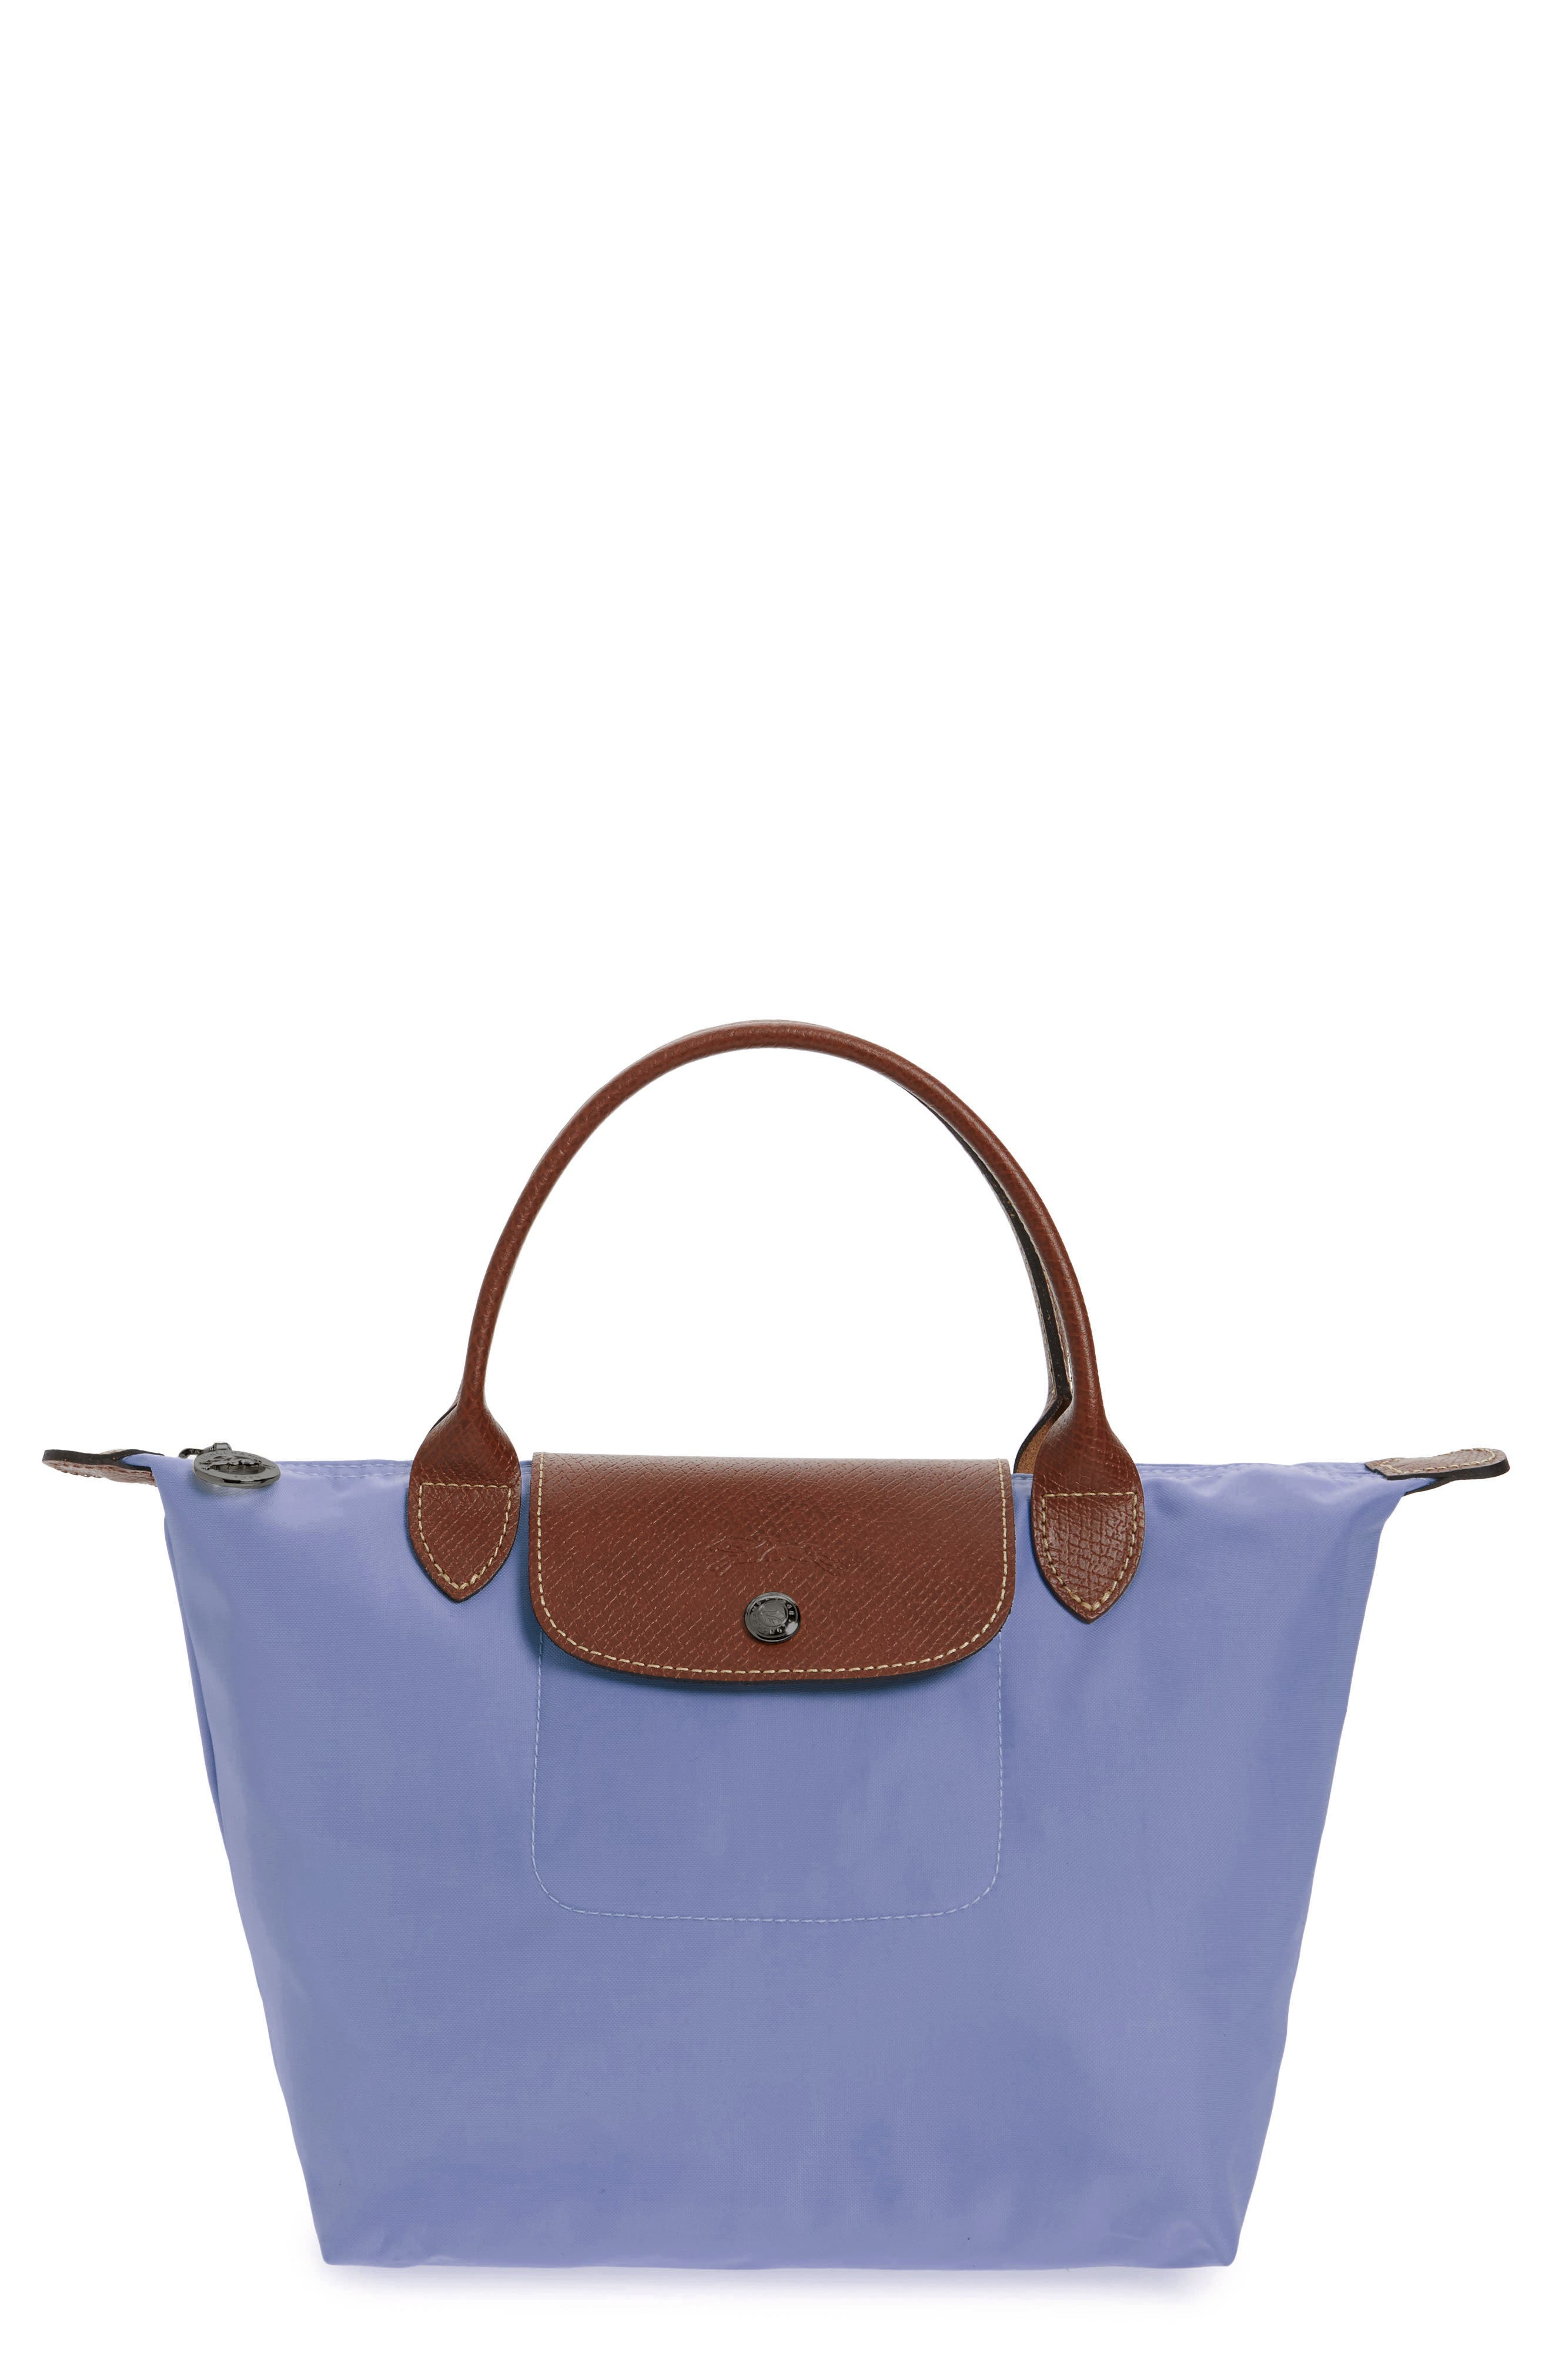 'Small Le Pliage' Top Handle Tote,                             Main thumbnail 1, color,                             Lavender